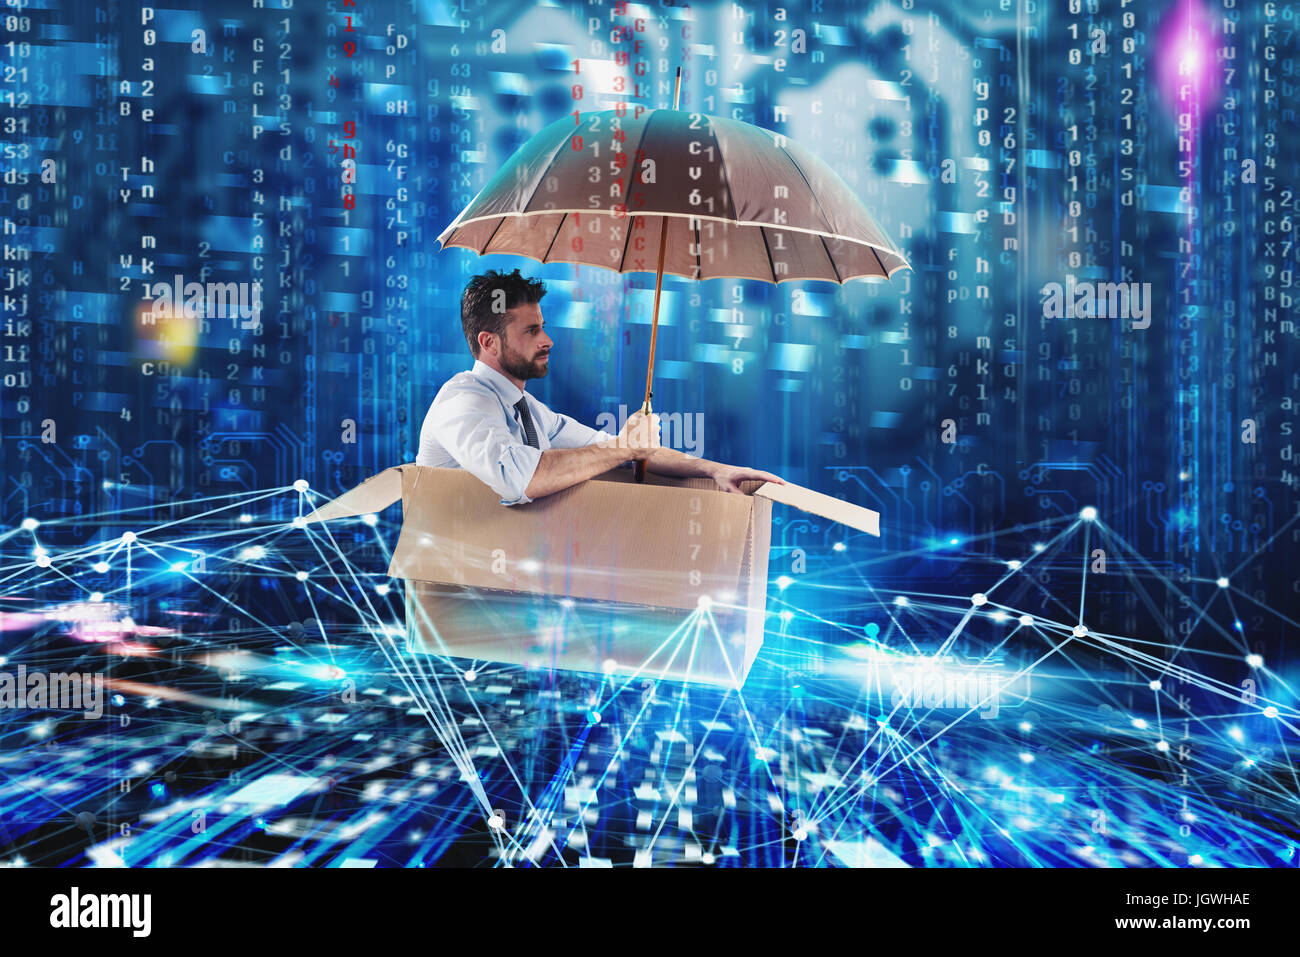 Businessman surfing the internet on a cardboard. Internet exploration concept - Stock Image